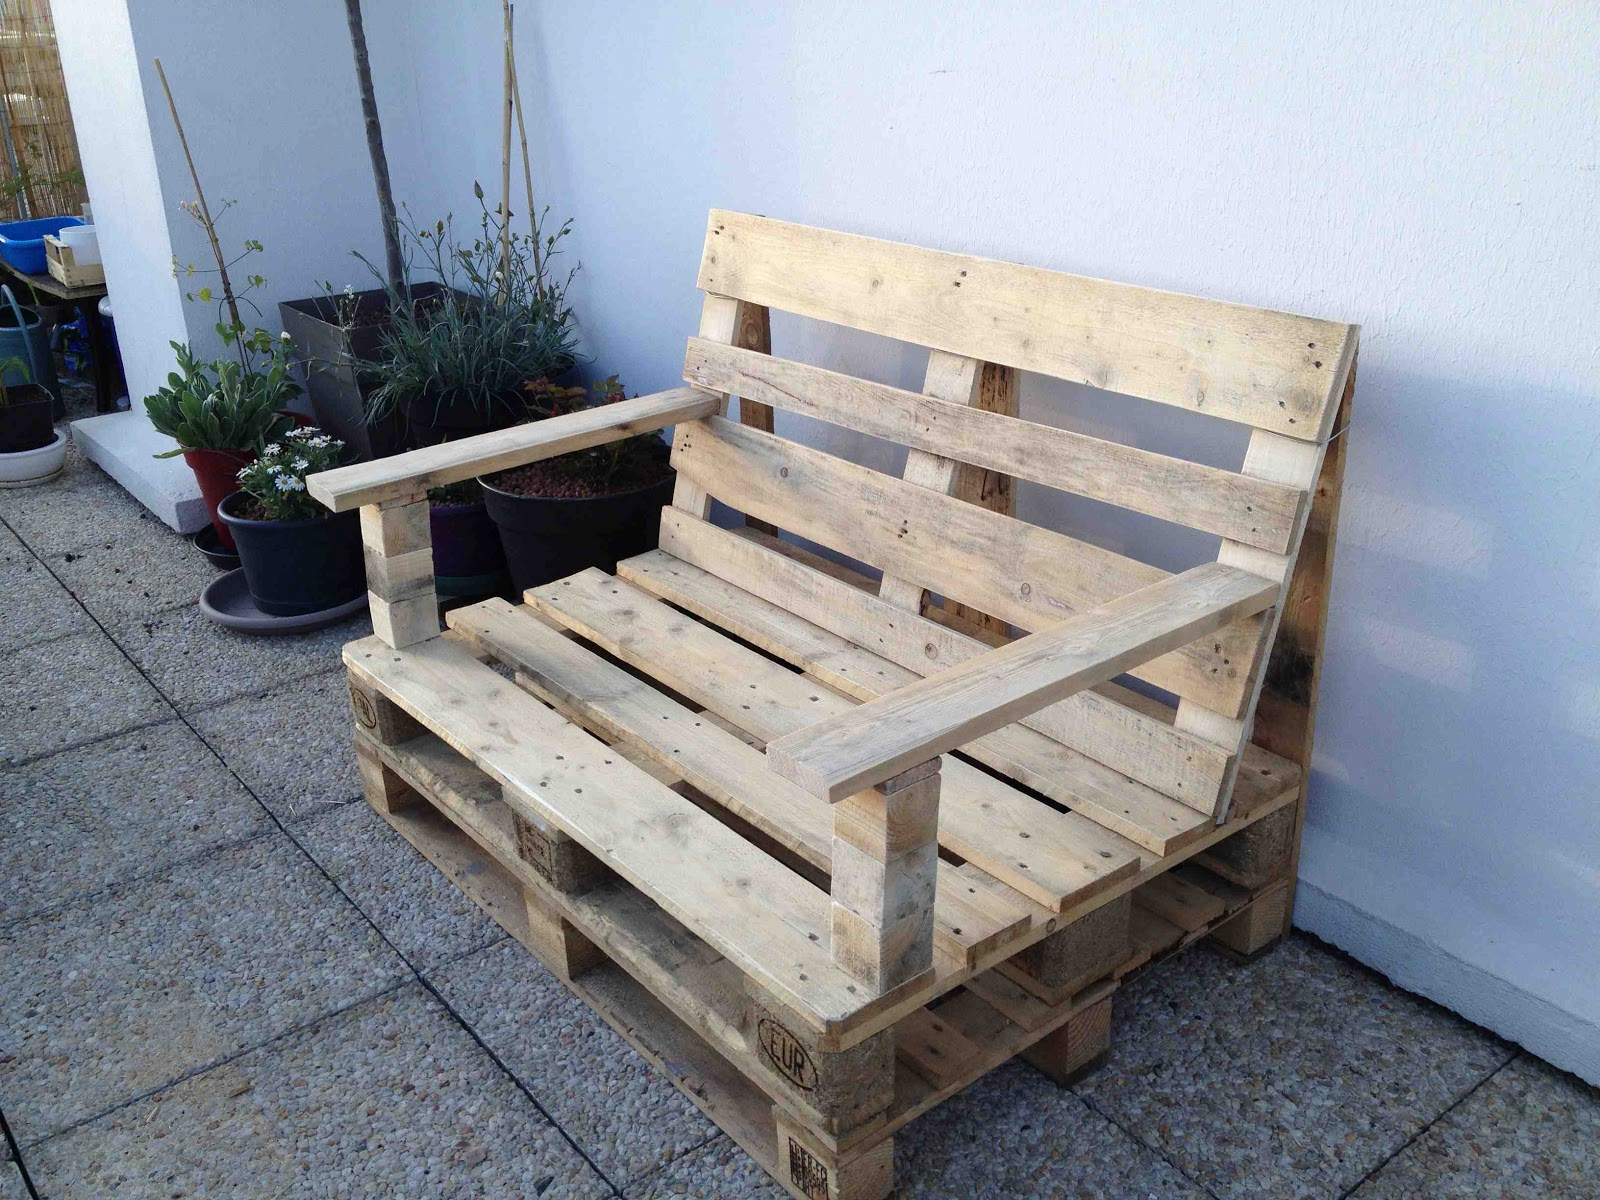 La m tamorphose du balcon fabrication salon jardin - Construction salon de jardin en palette ...